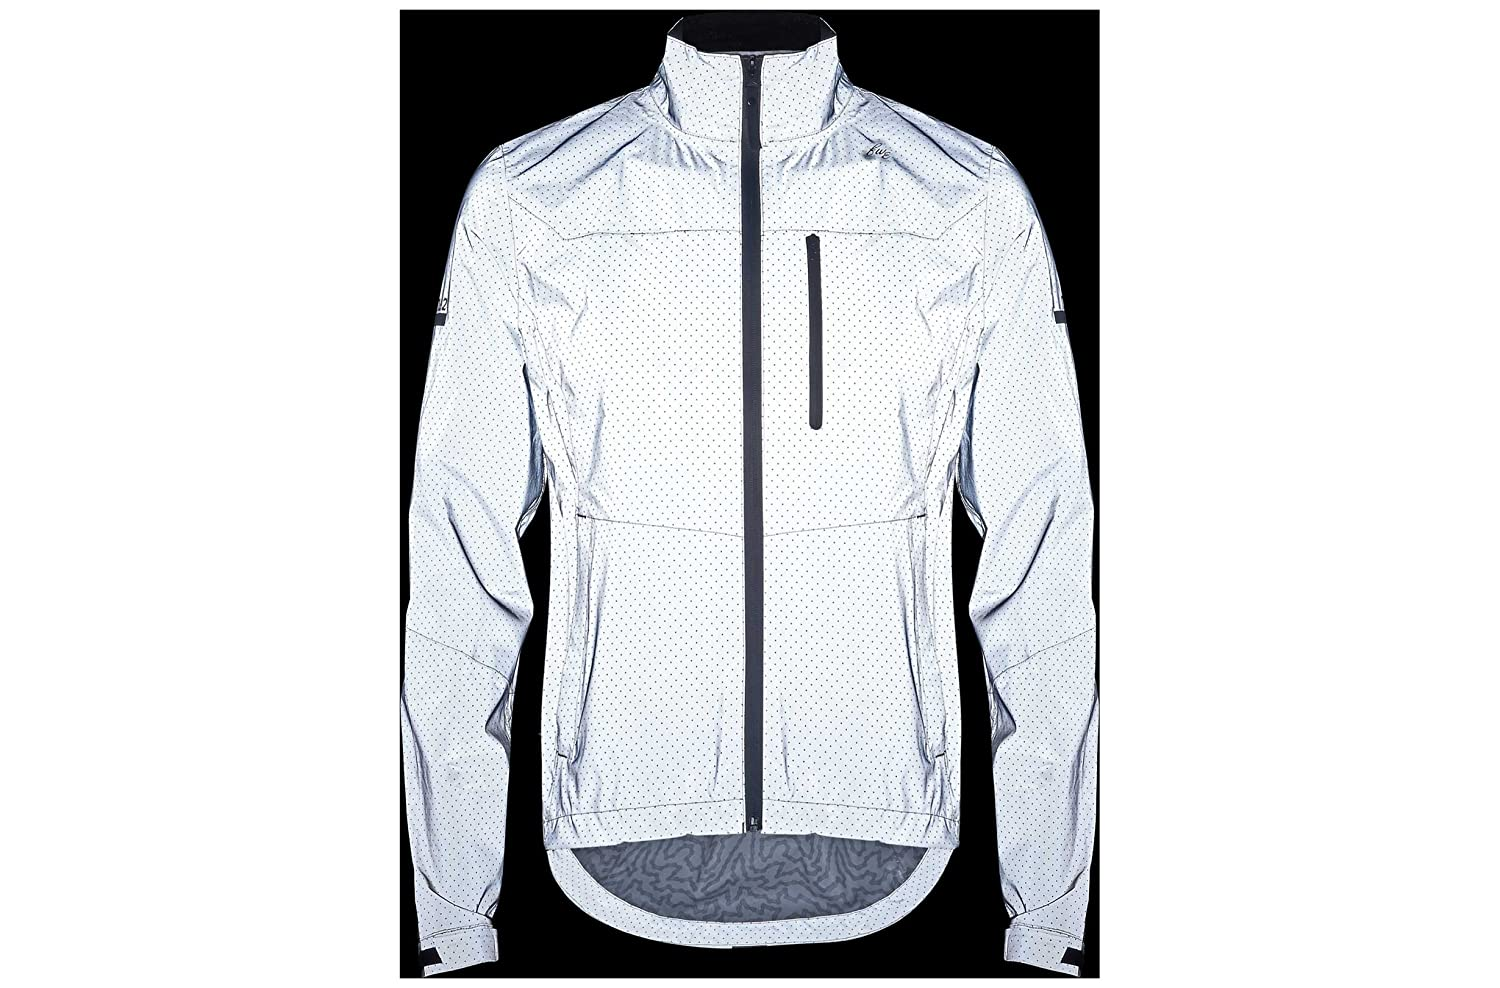 Outdoor Casual Jersey Running GYM Sports Didoo Cycling jacket ✱ Buy 1 get 1 Buy 2 get 33/% off ✱ waterproof mens Thermal Breathable Reflective Winter Rain Coat Hi Viz Full Zipper Bike